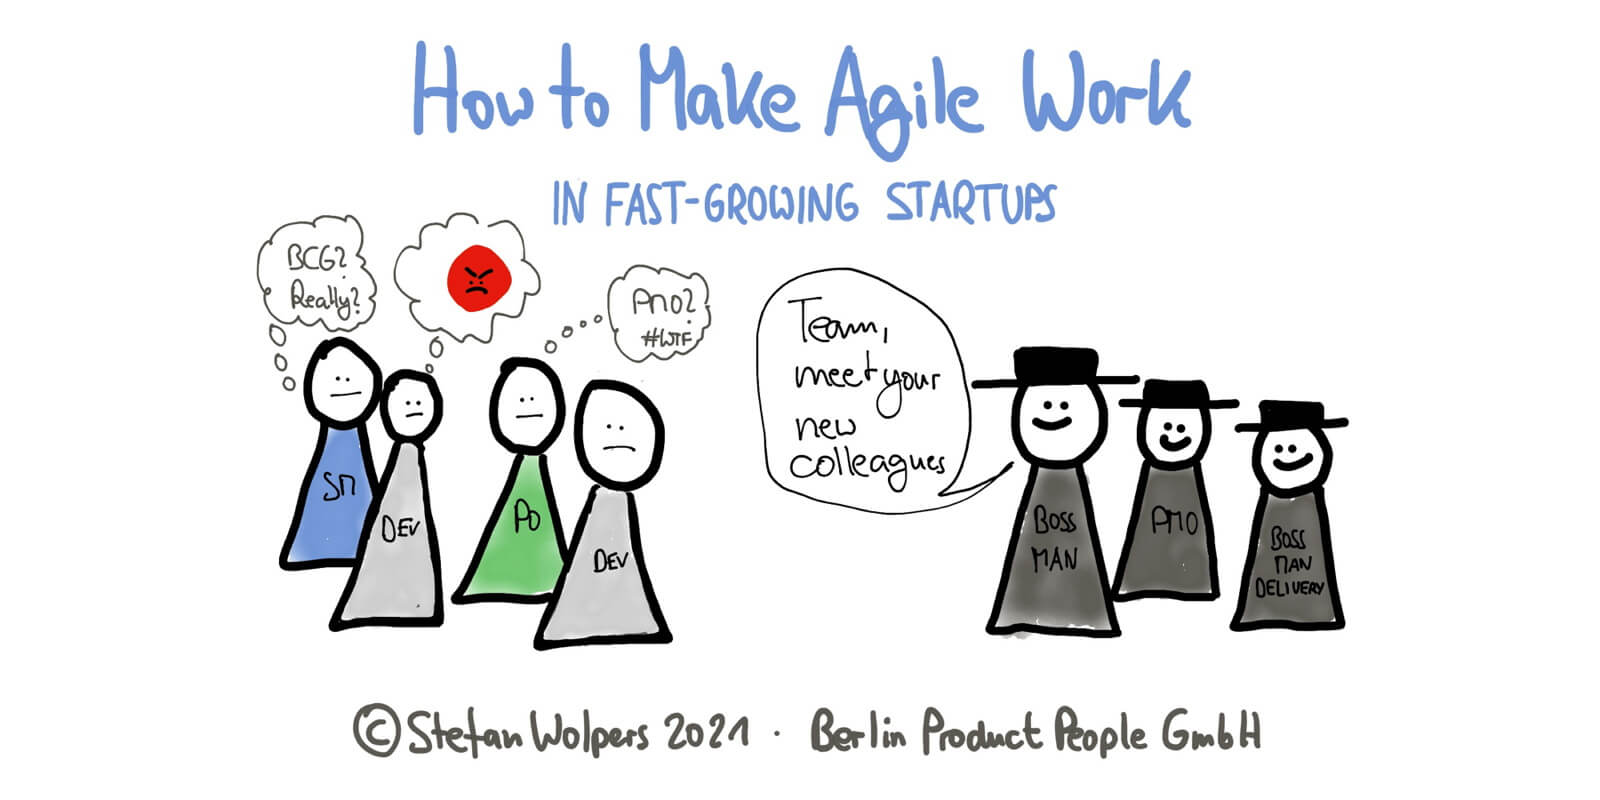 How to Make Agile Work in Fast-Growing Startups — Age-of-Product.com